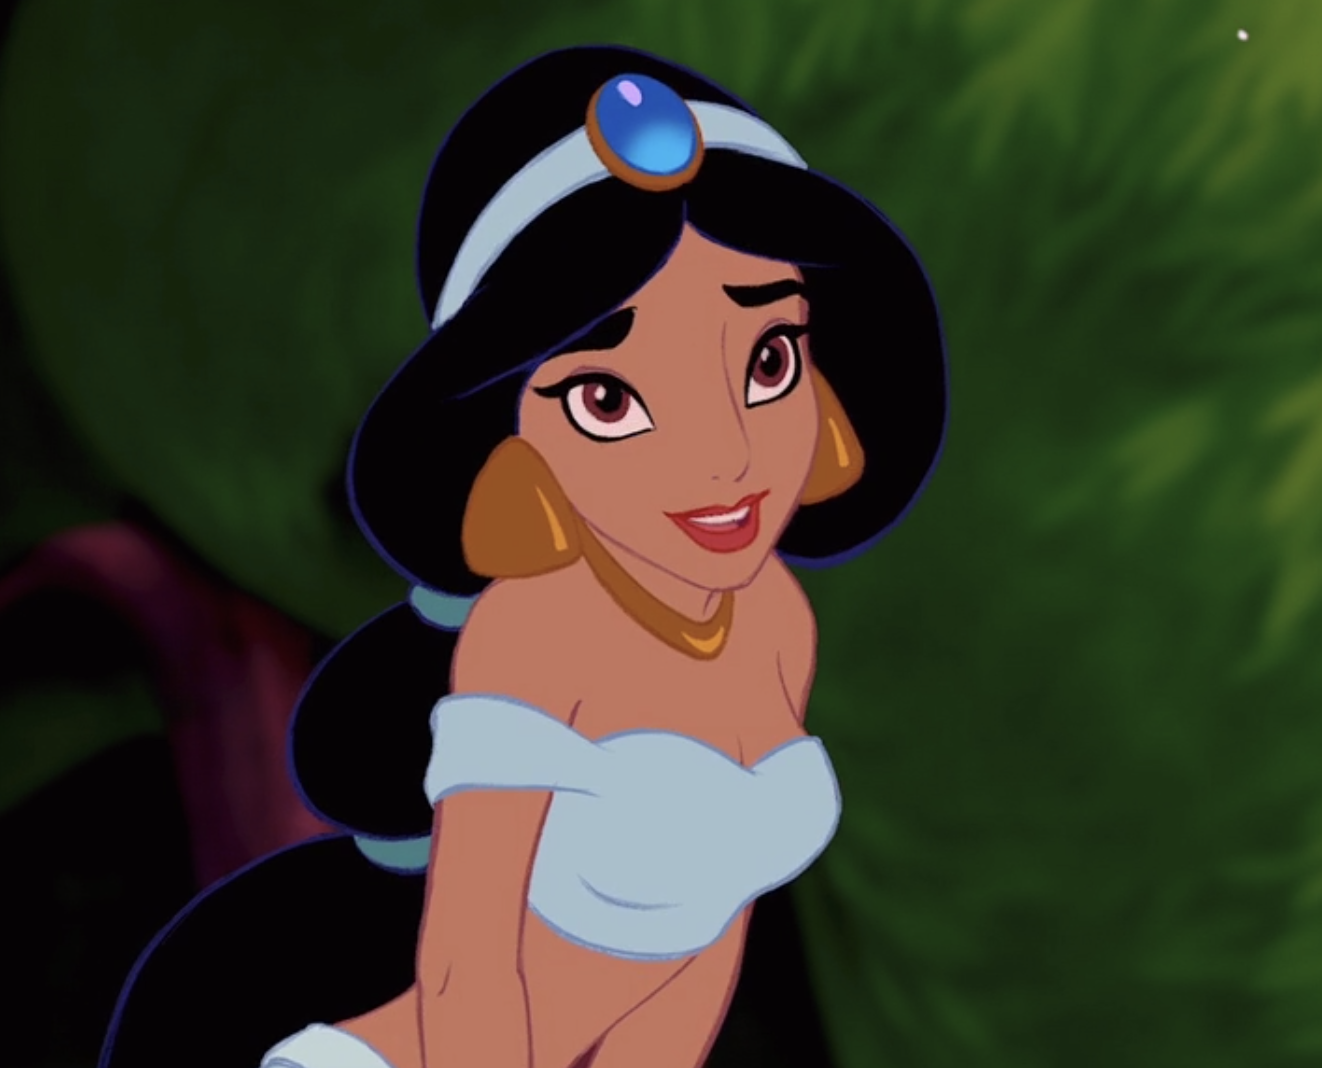 Jasmine sits on the edge of a fountain and smiles